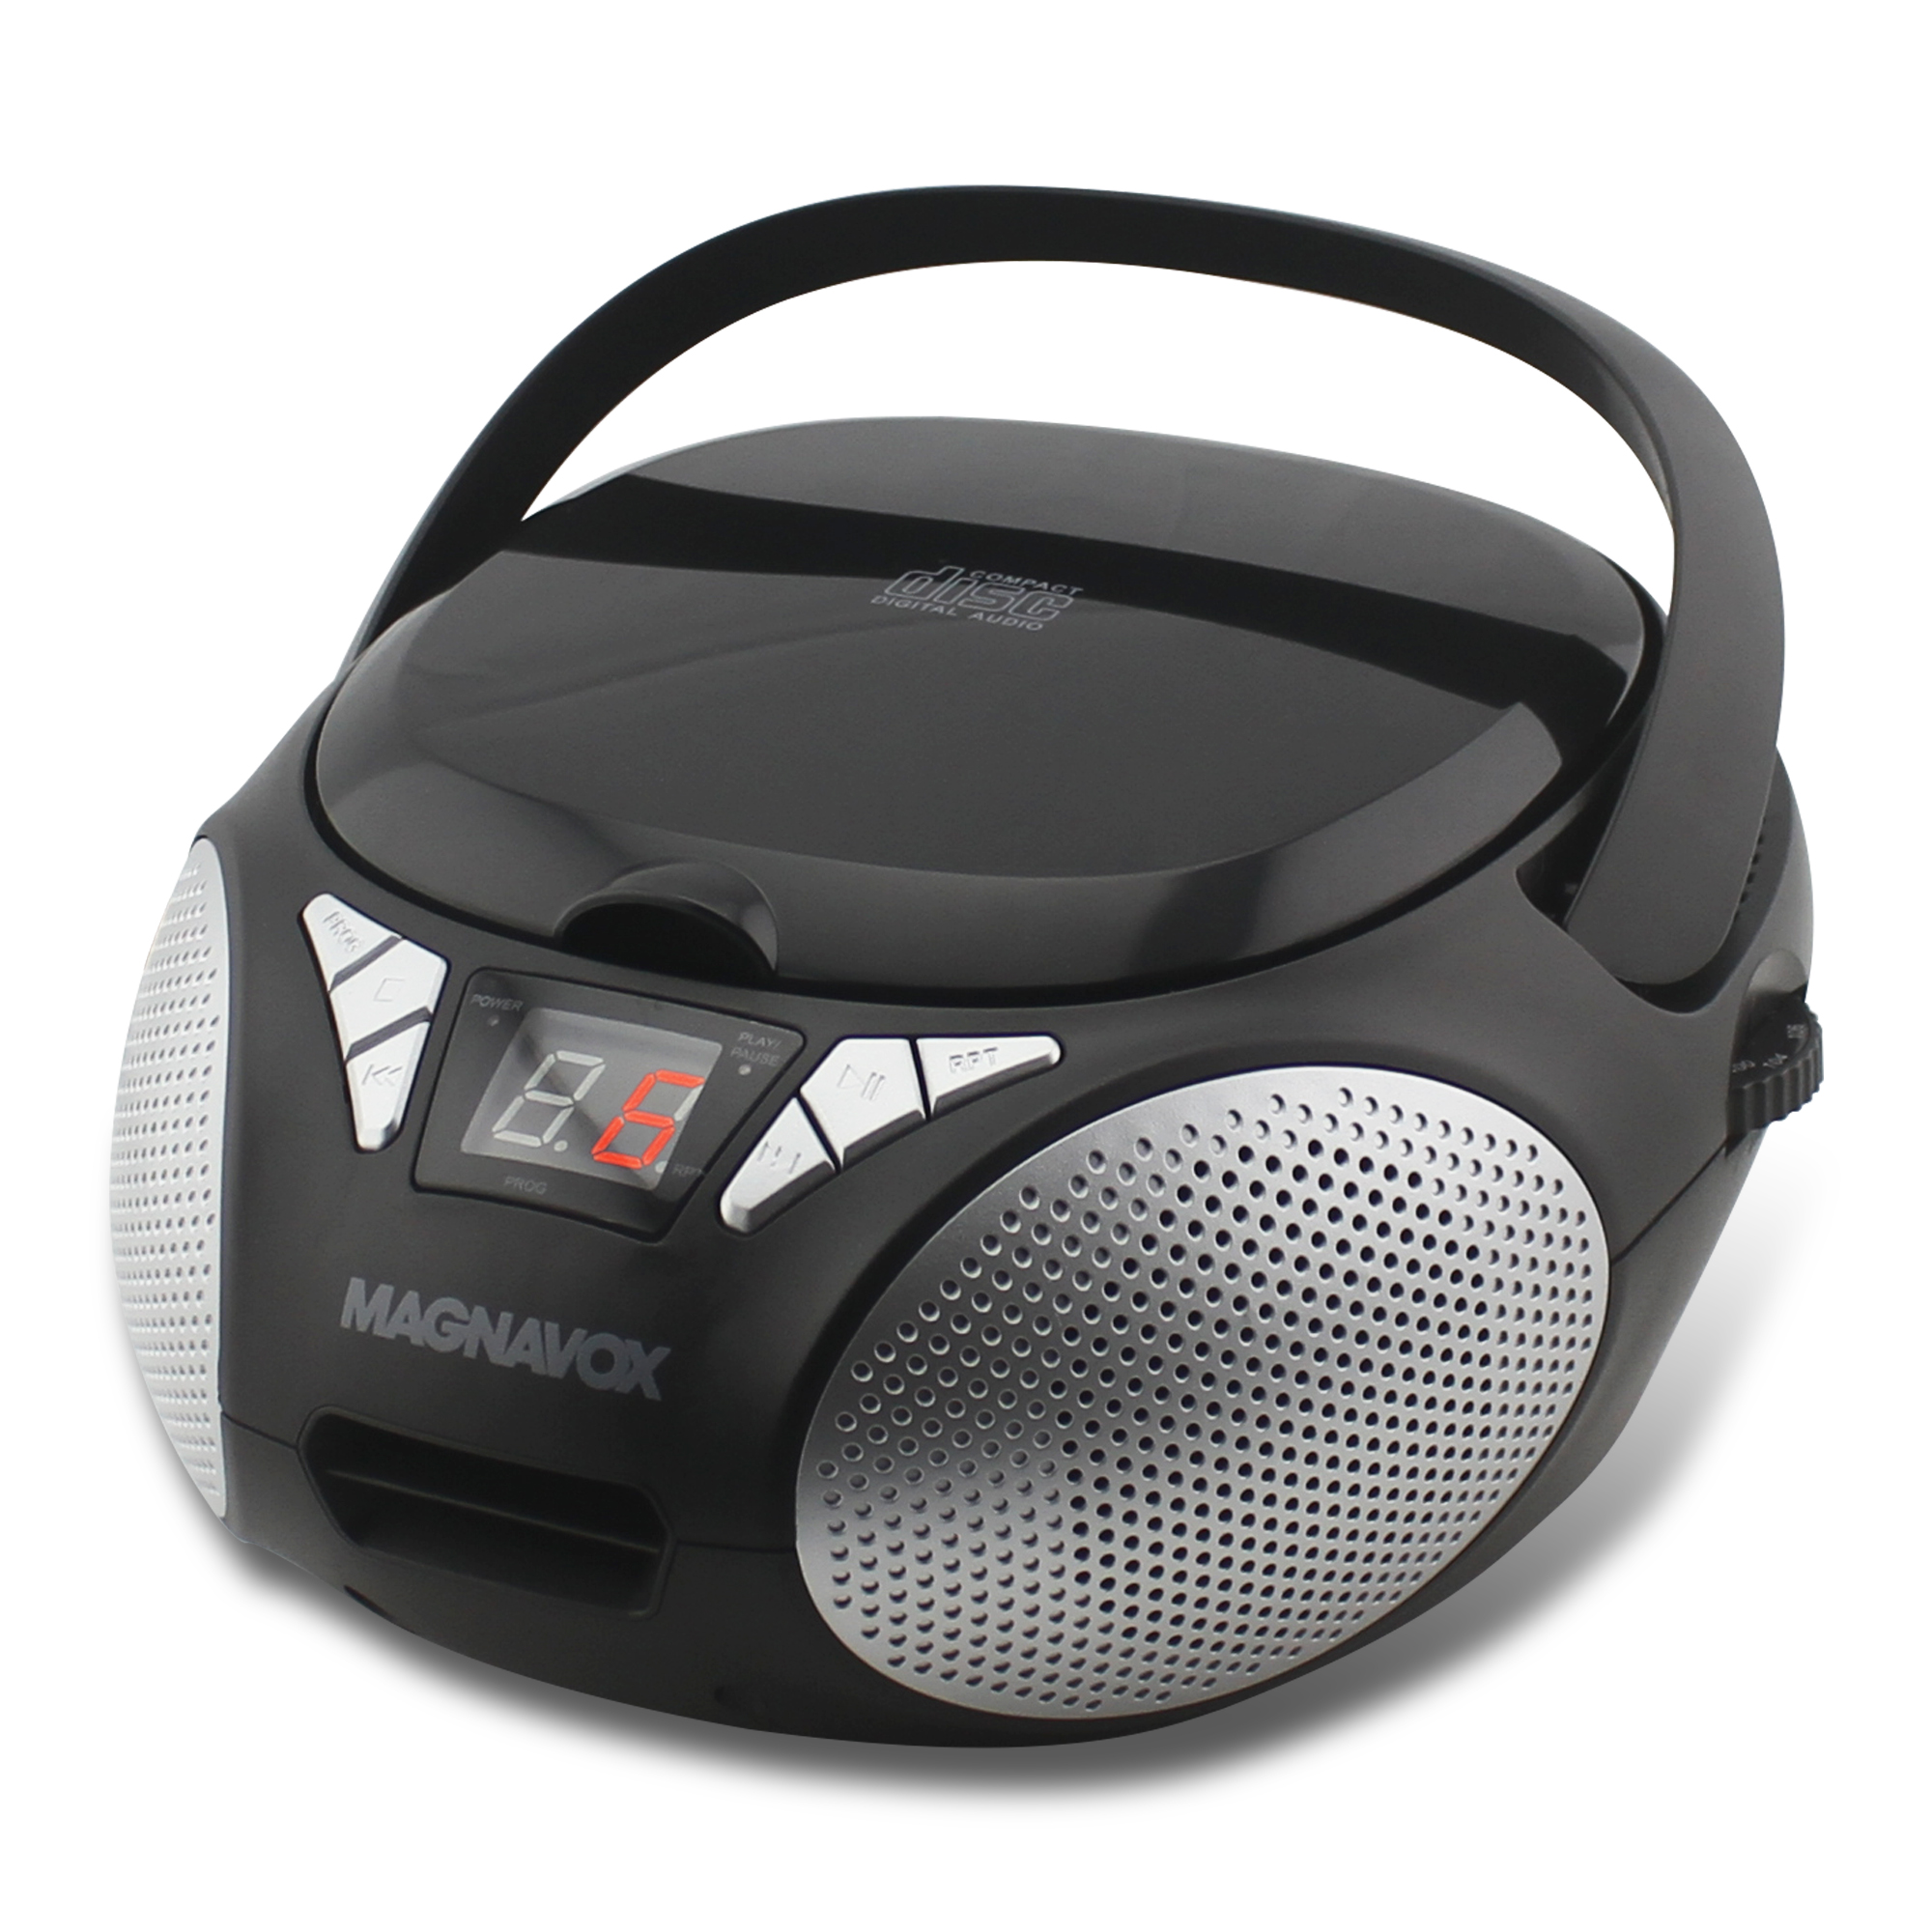 magnavox cd boombox with